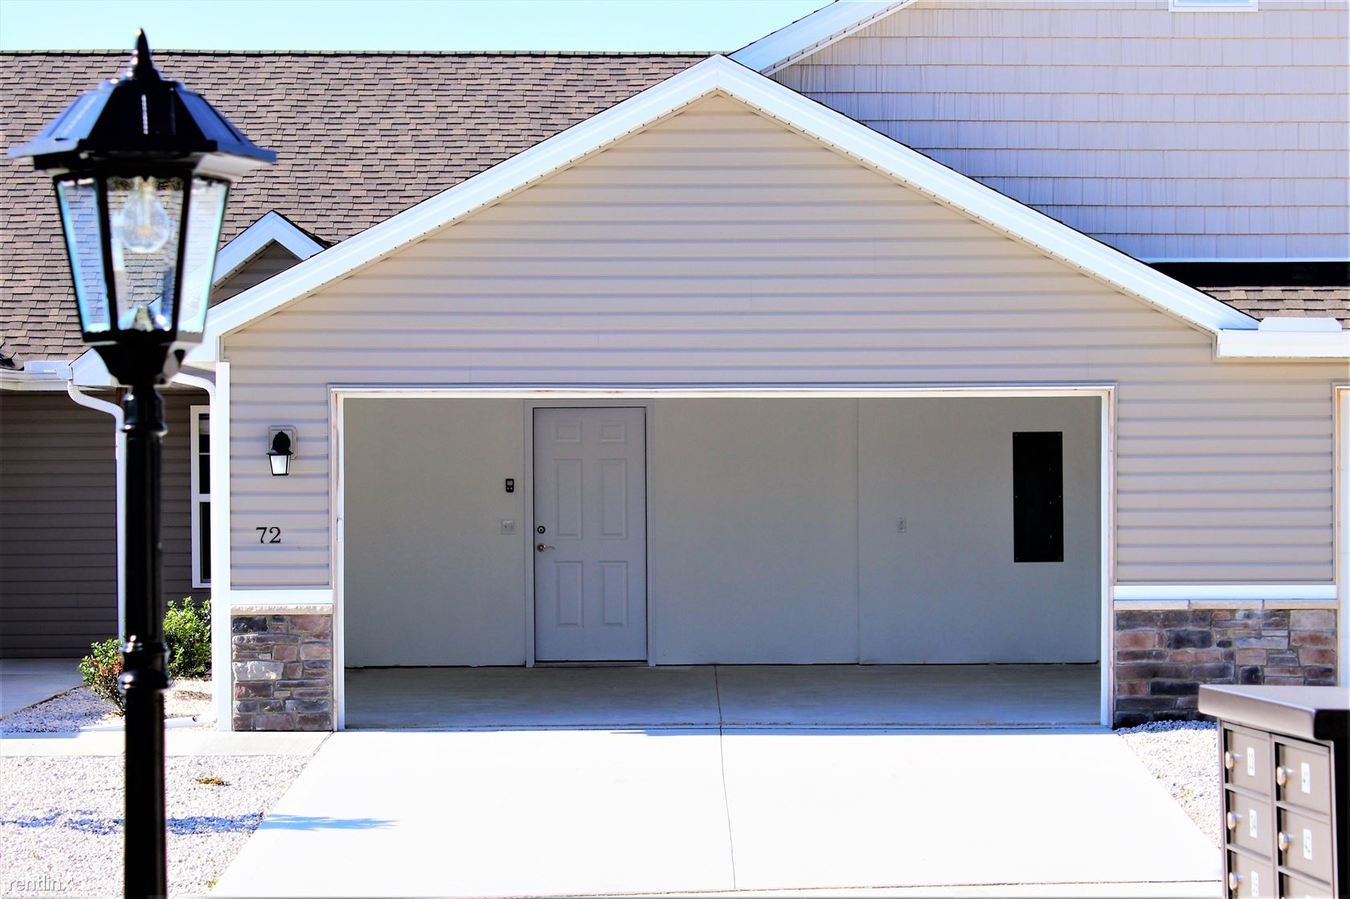 2 Bedrooms 2 Bathrooms Apartment for rent at Waterville Colony in Waterville, OH